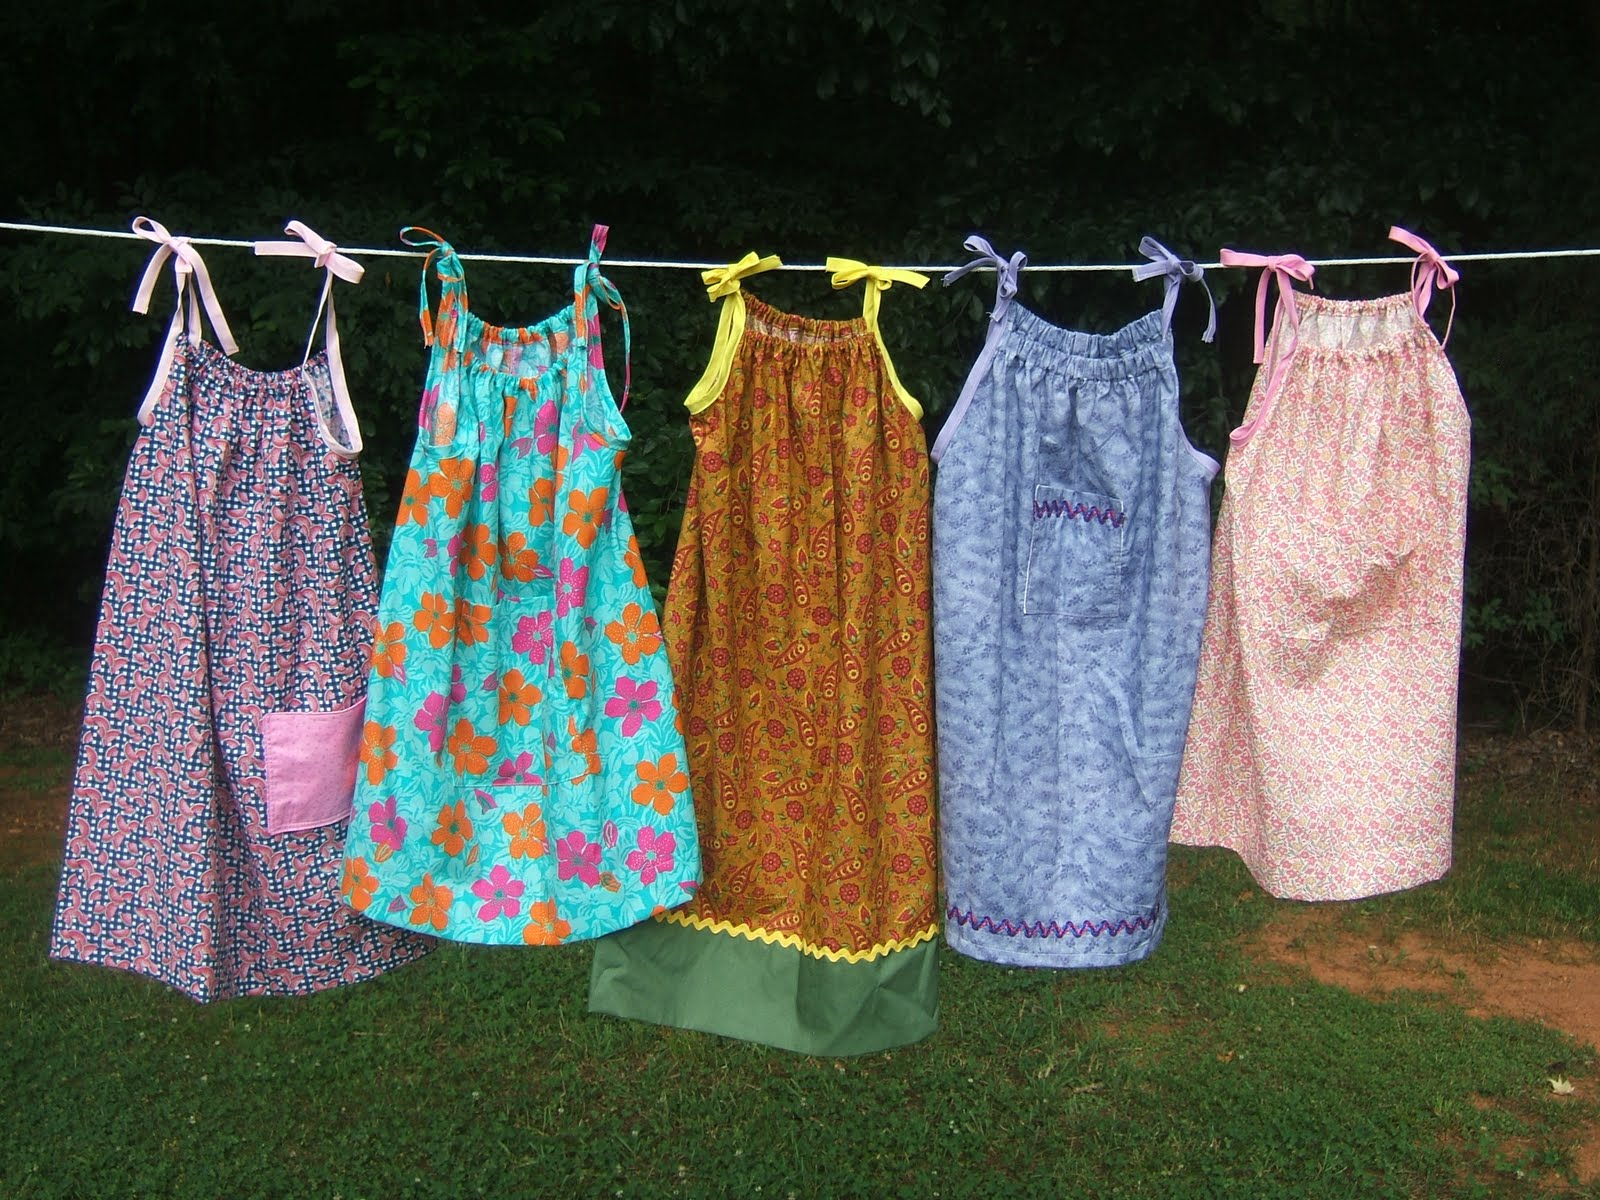 Devon4africa My Introduction To Little Dresses For Africa